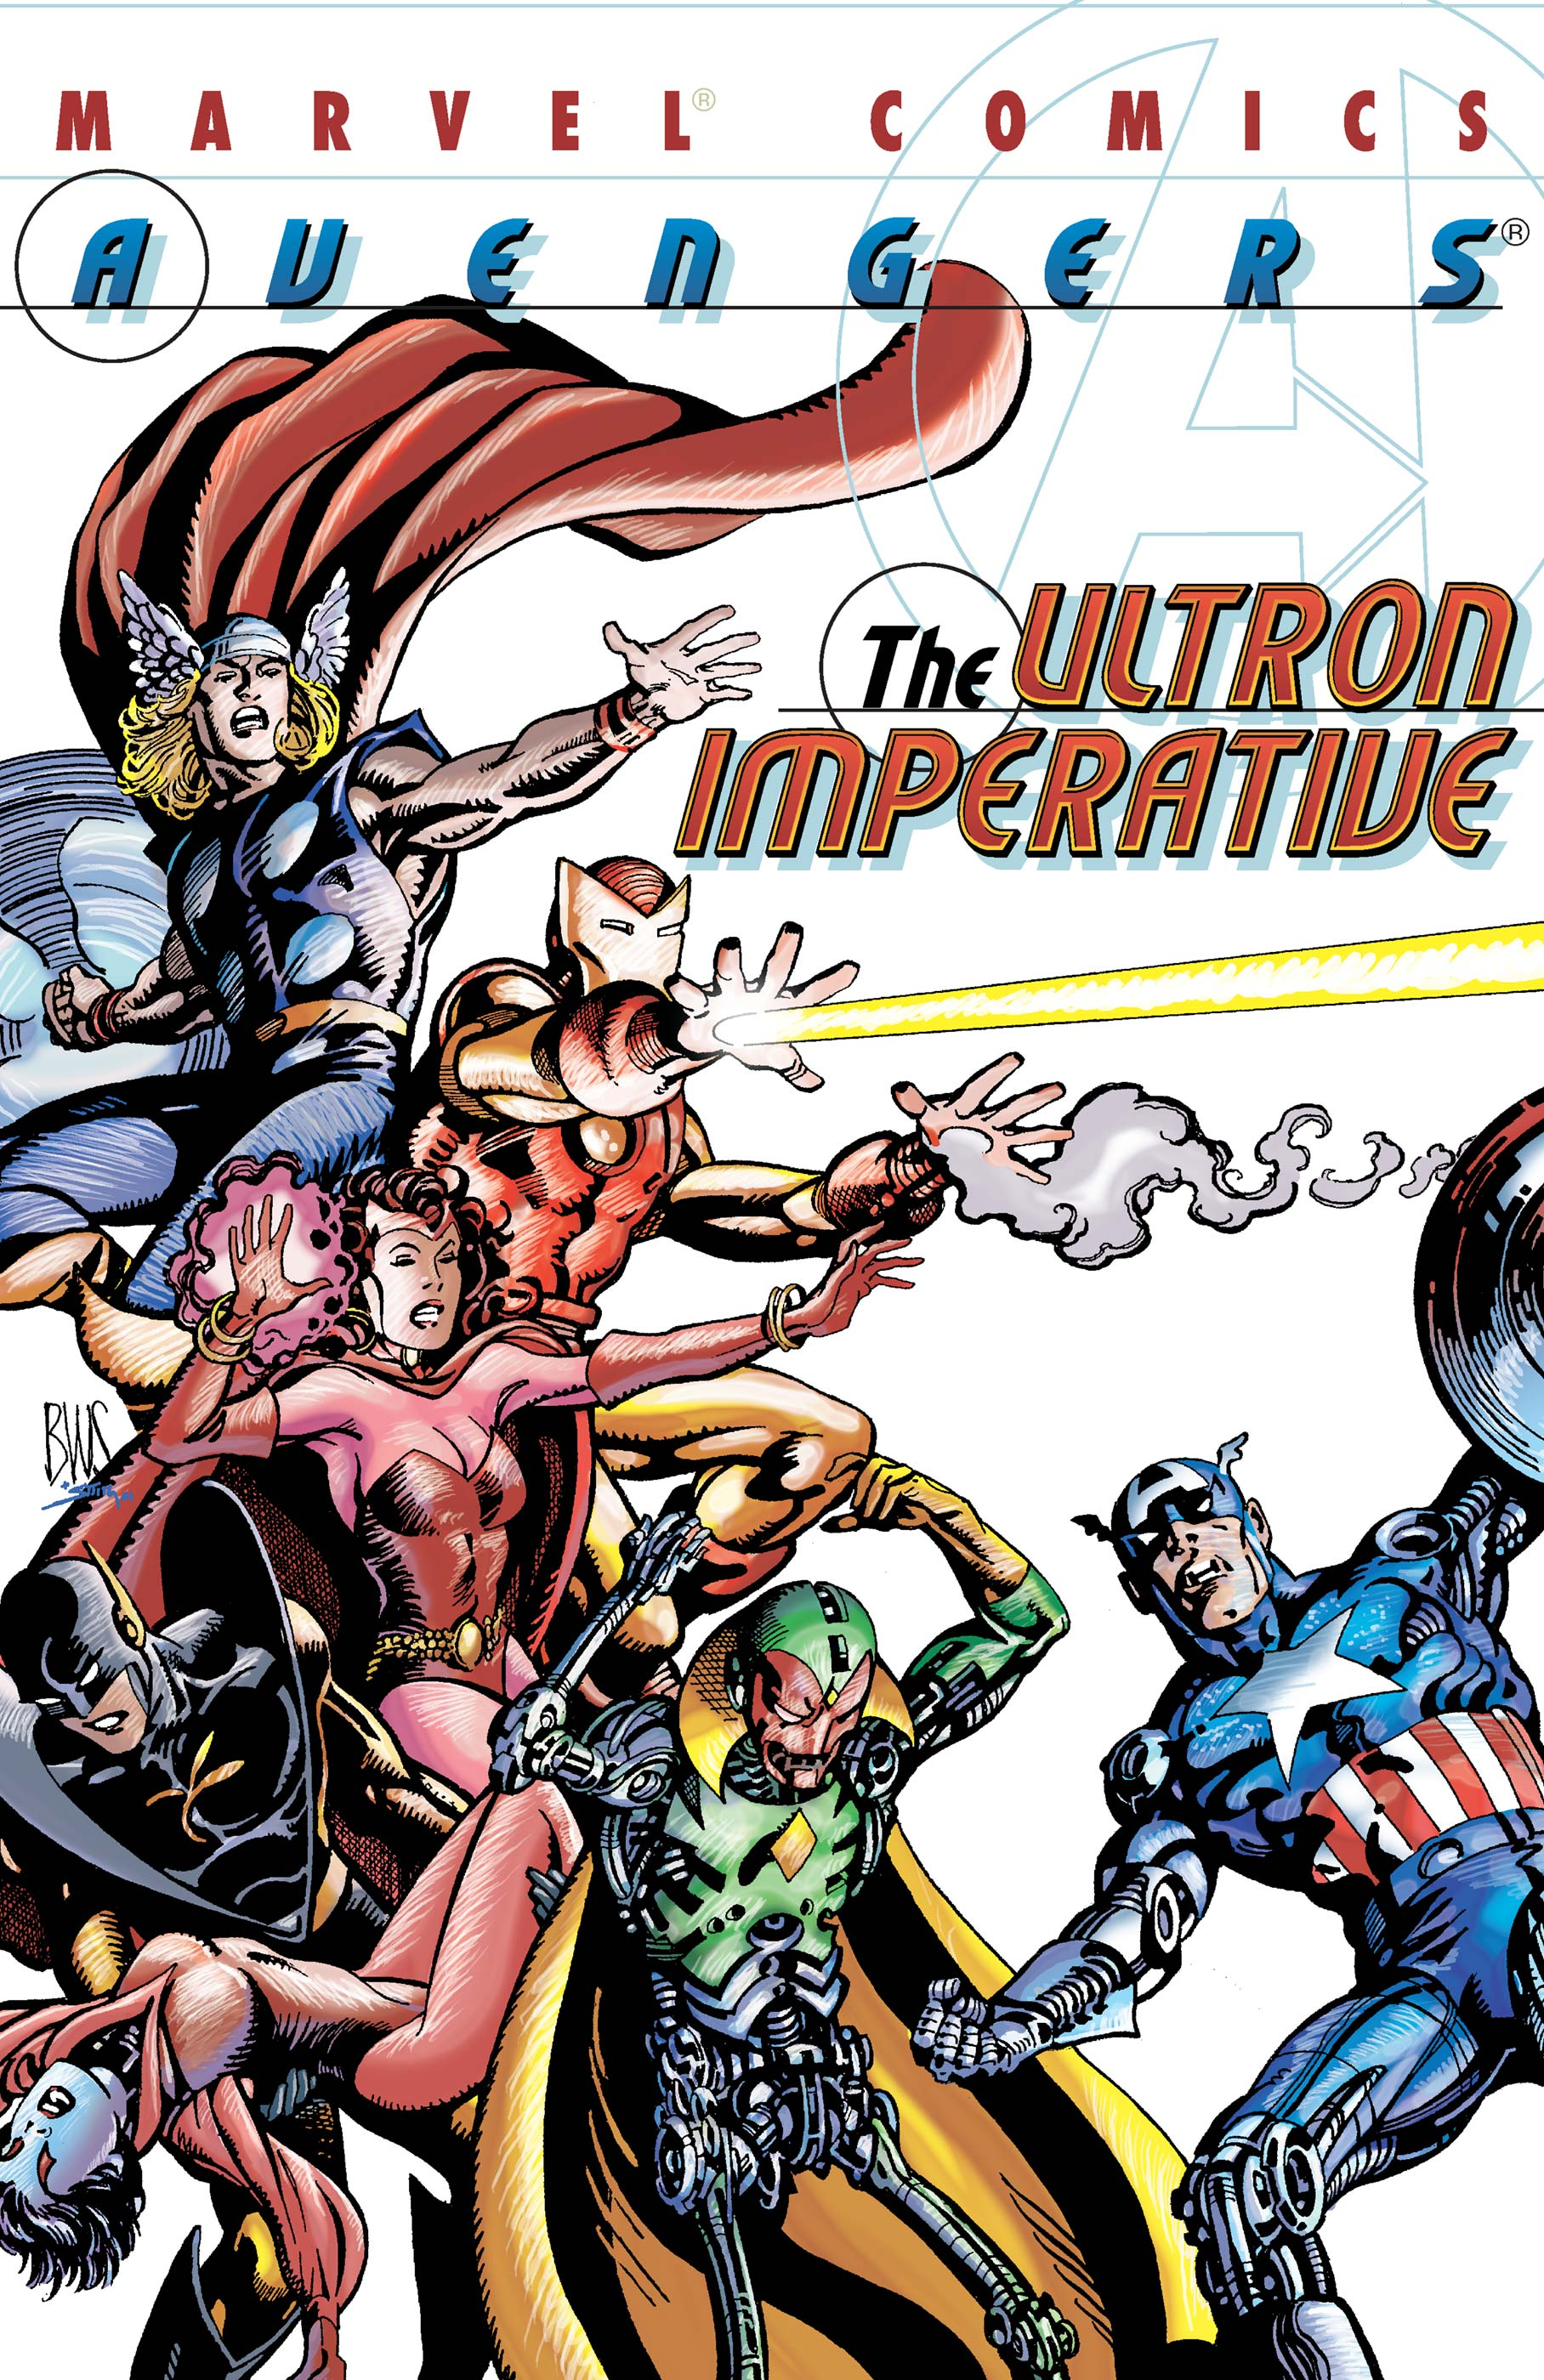 Avengers: The Ultron Imperative (2001) #1